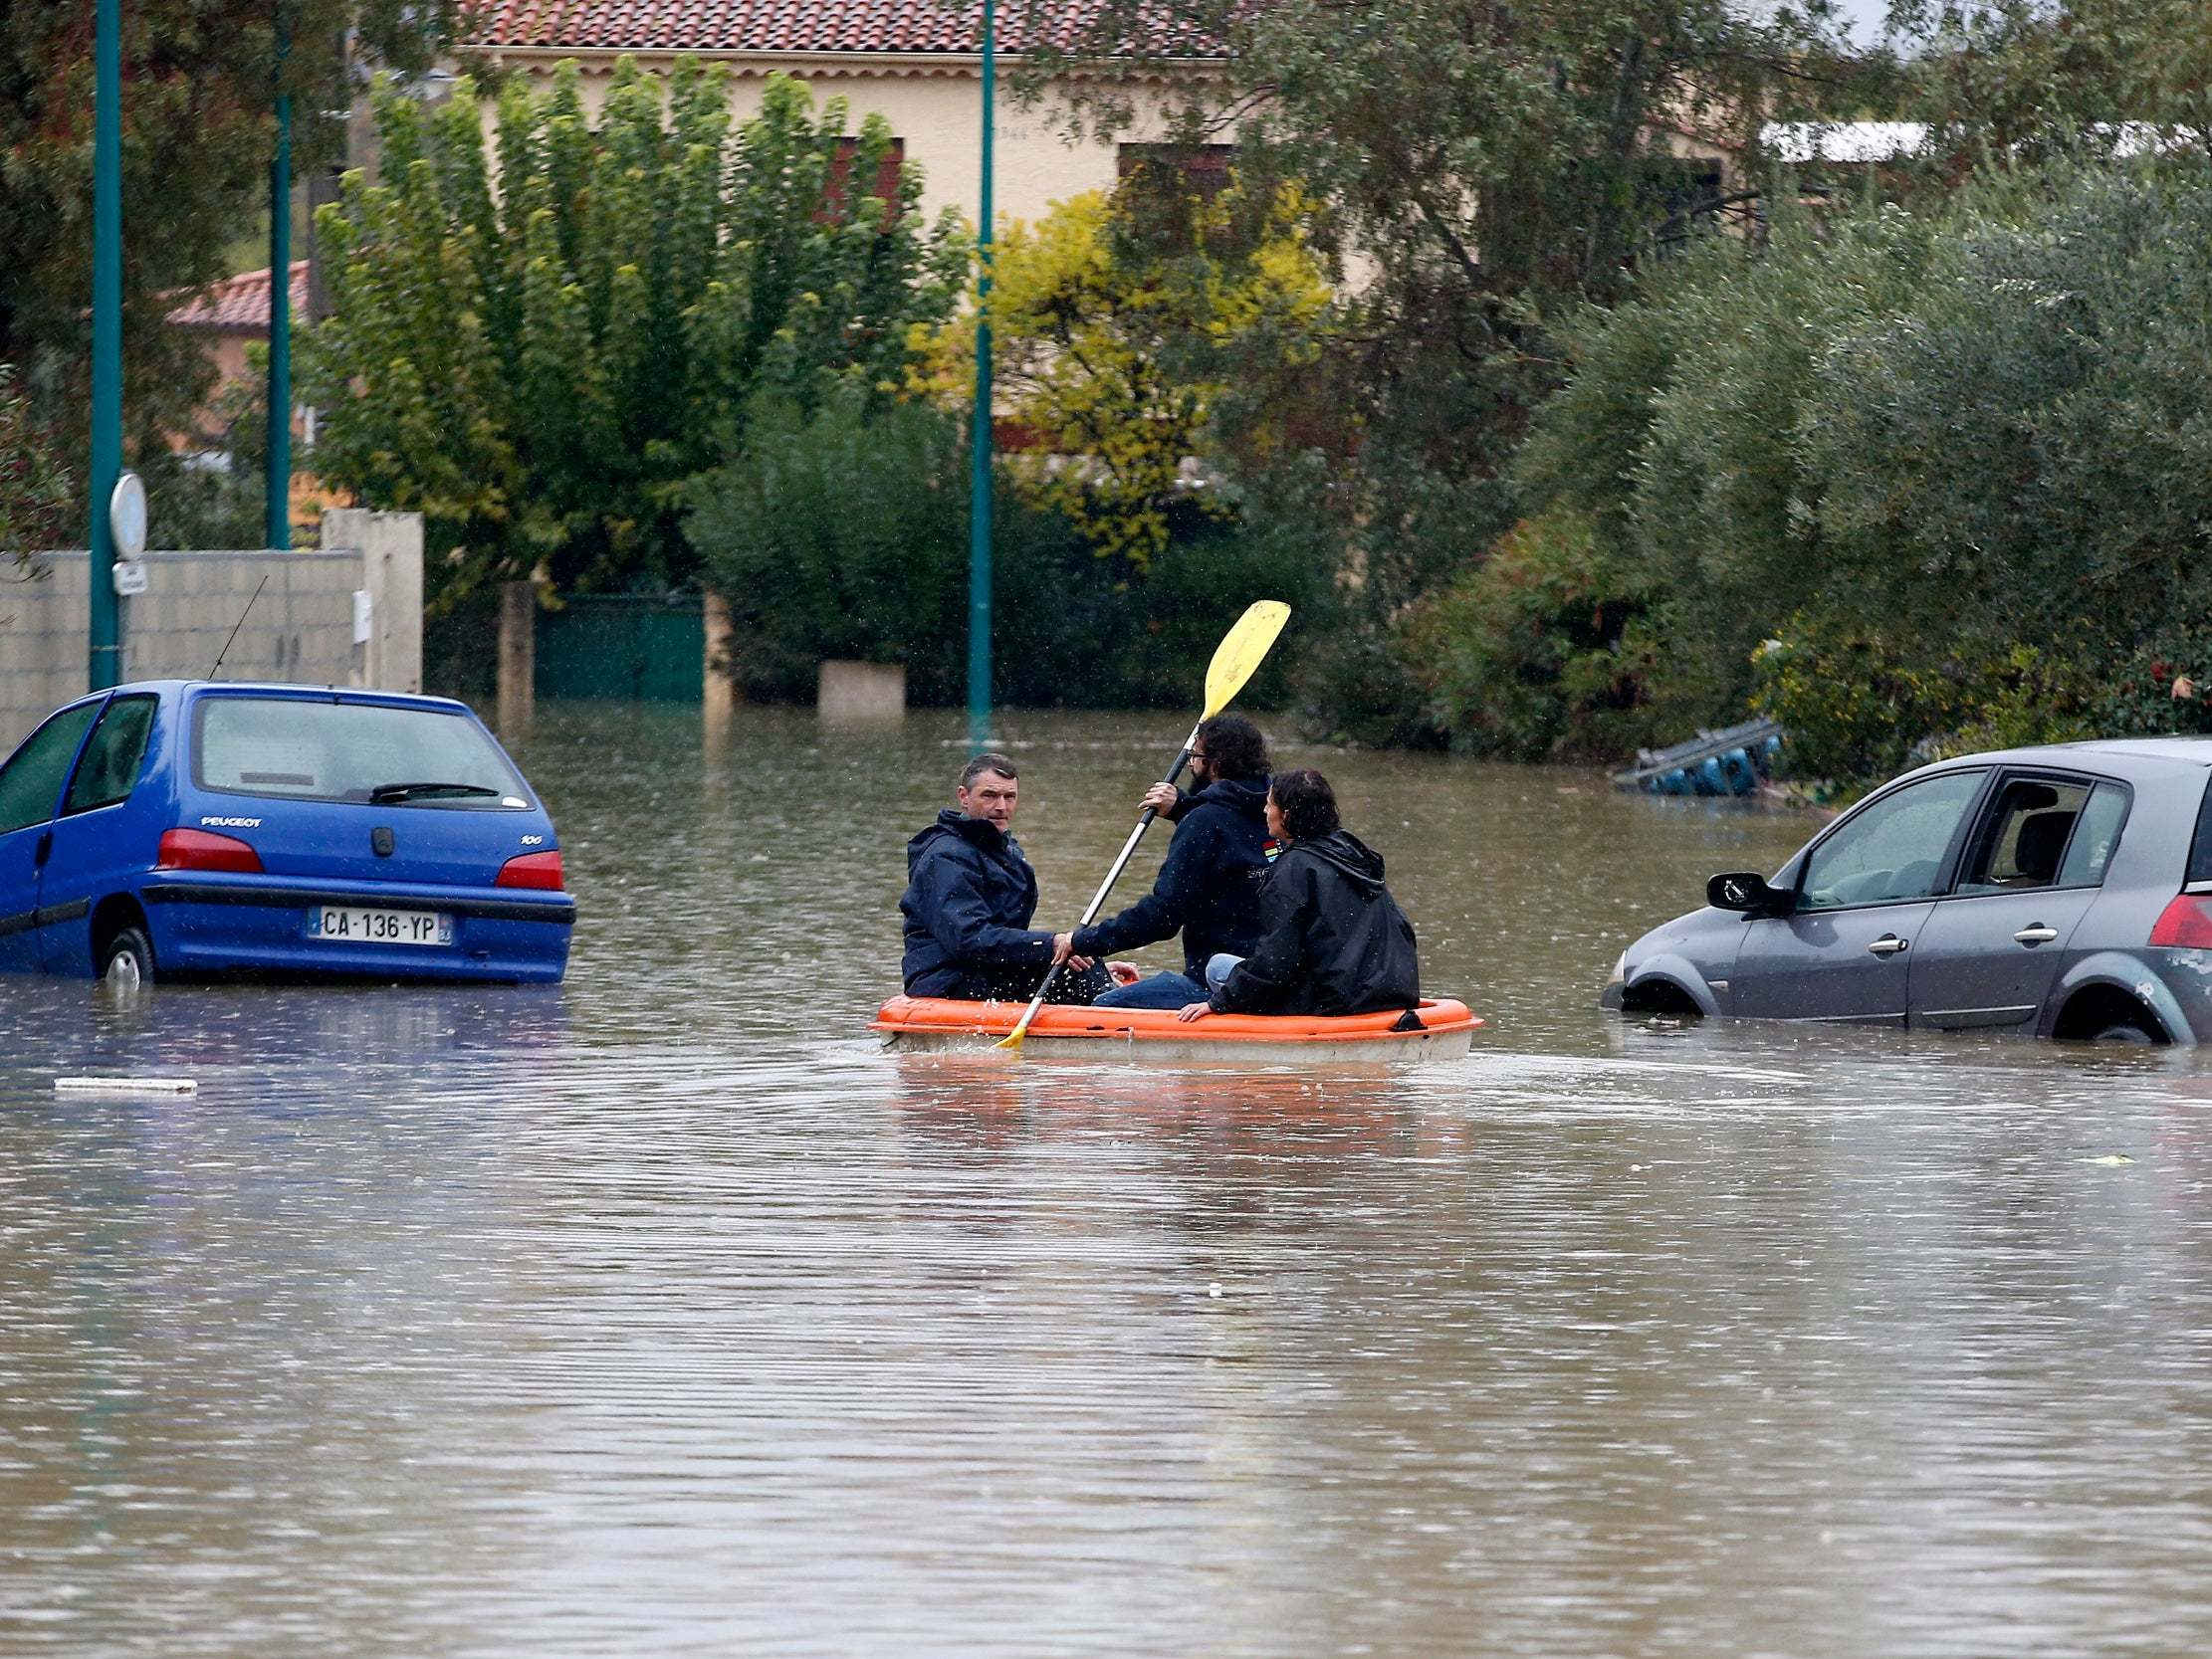 Europe storms: Nine killed in flash floods and landslides across France, Greece and Italy